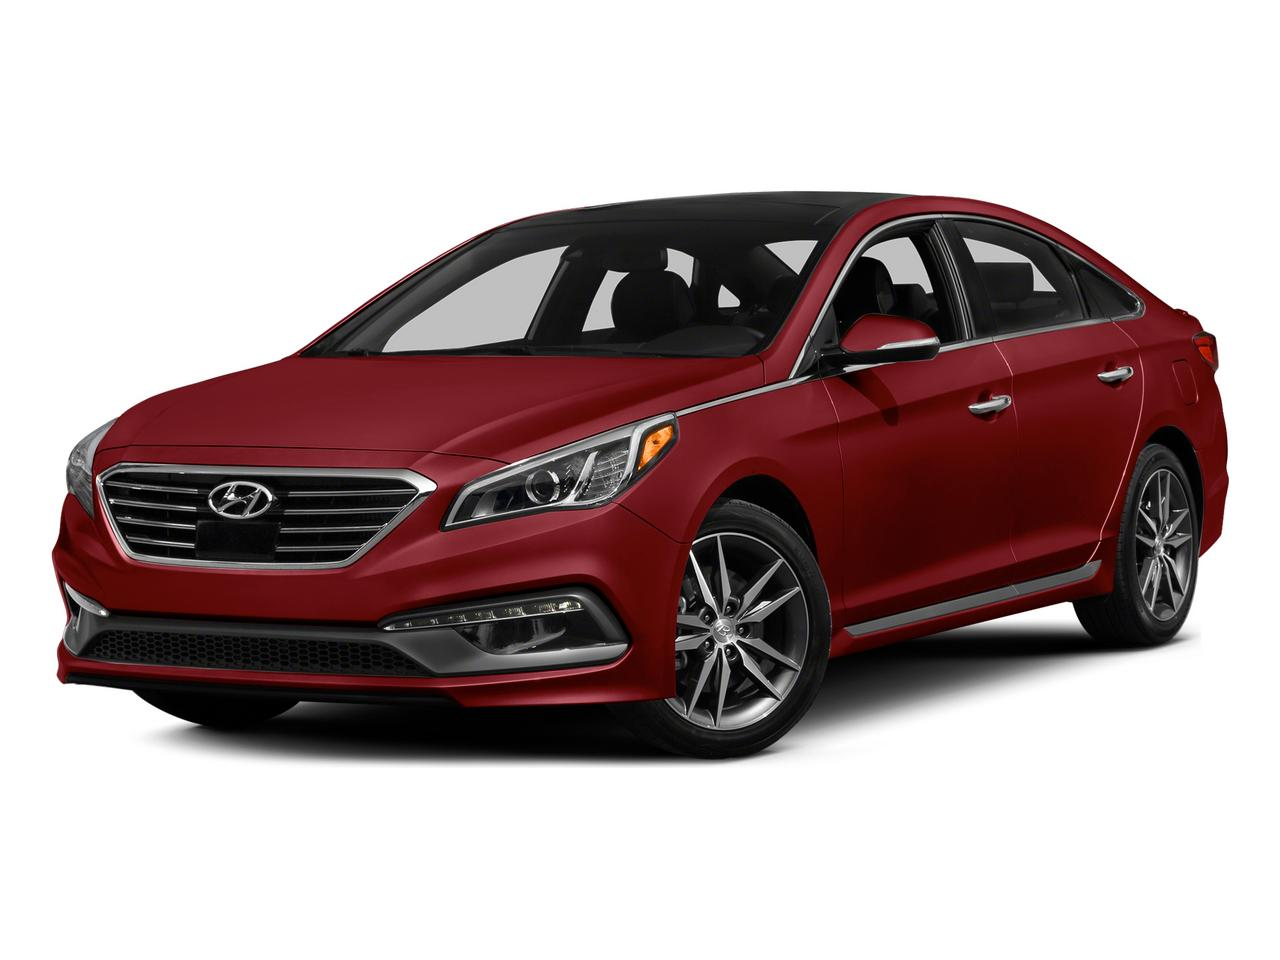 2015 Hyundai Sonata Vehicle Photo in Owensboro, KY 42303